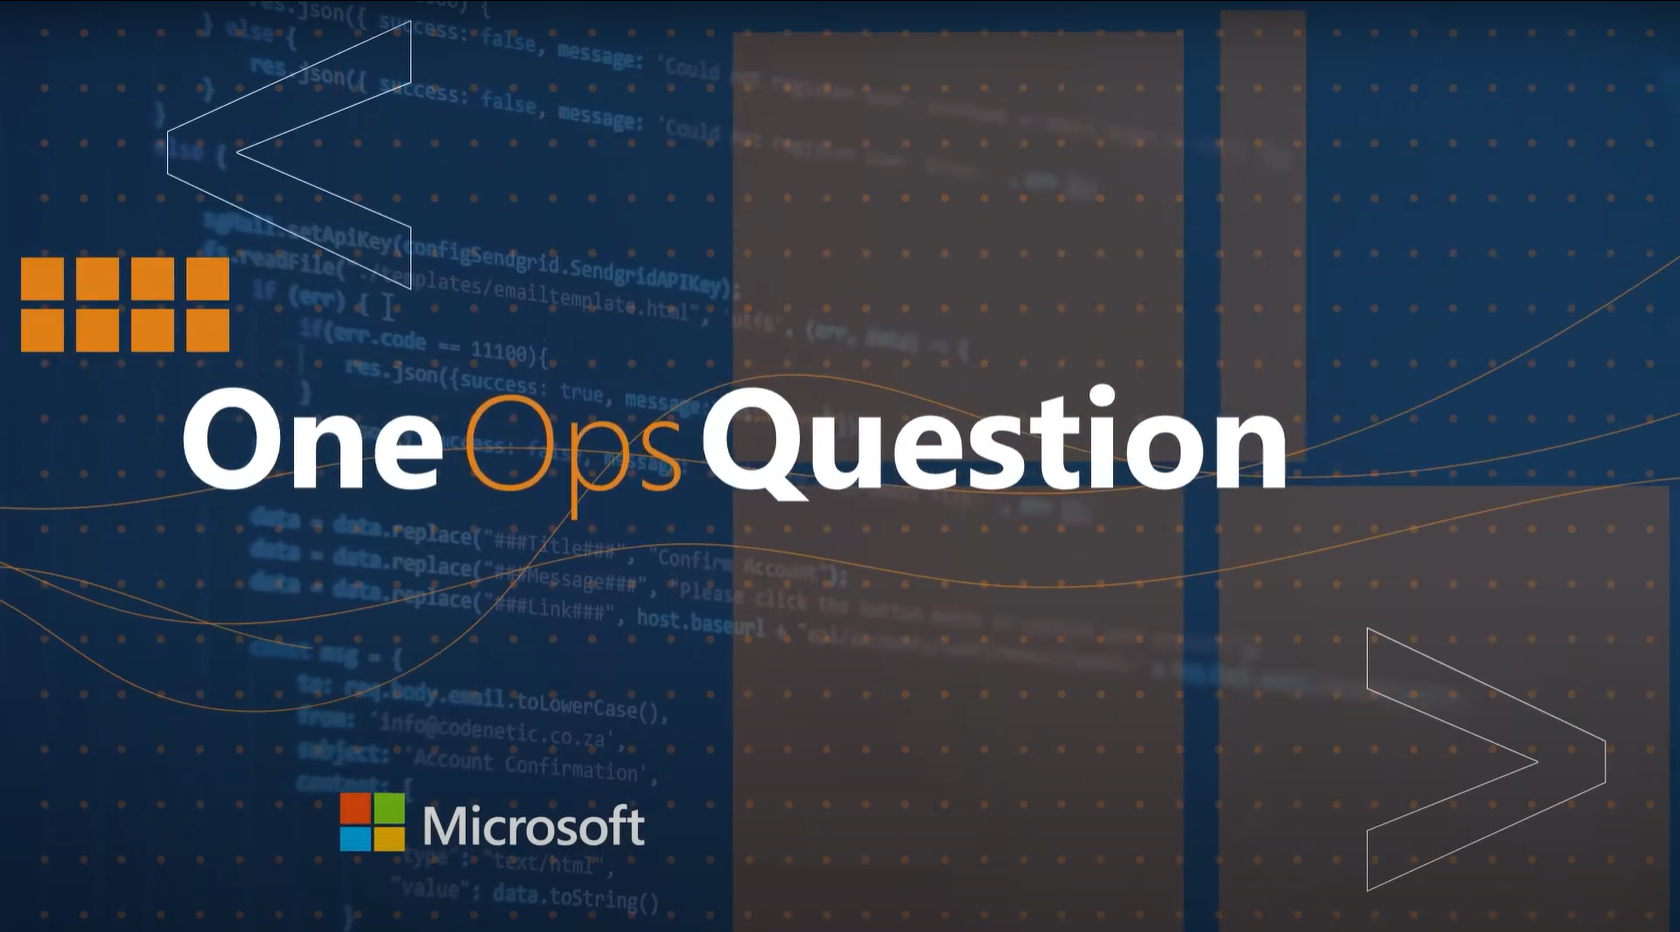 One Ops Question: I'm a system administrator, and DevOps seems scary, how do I get started?